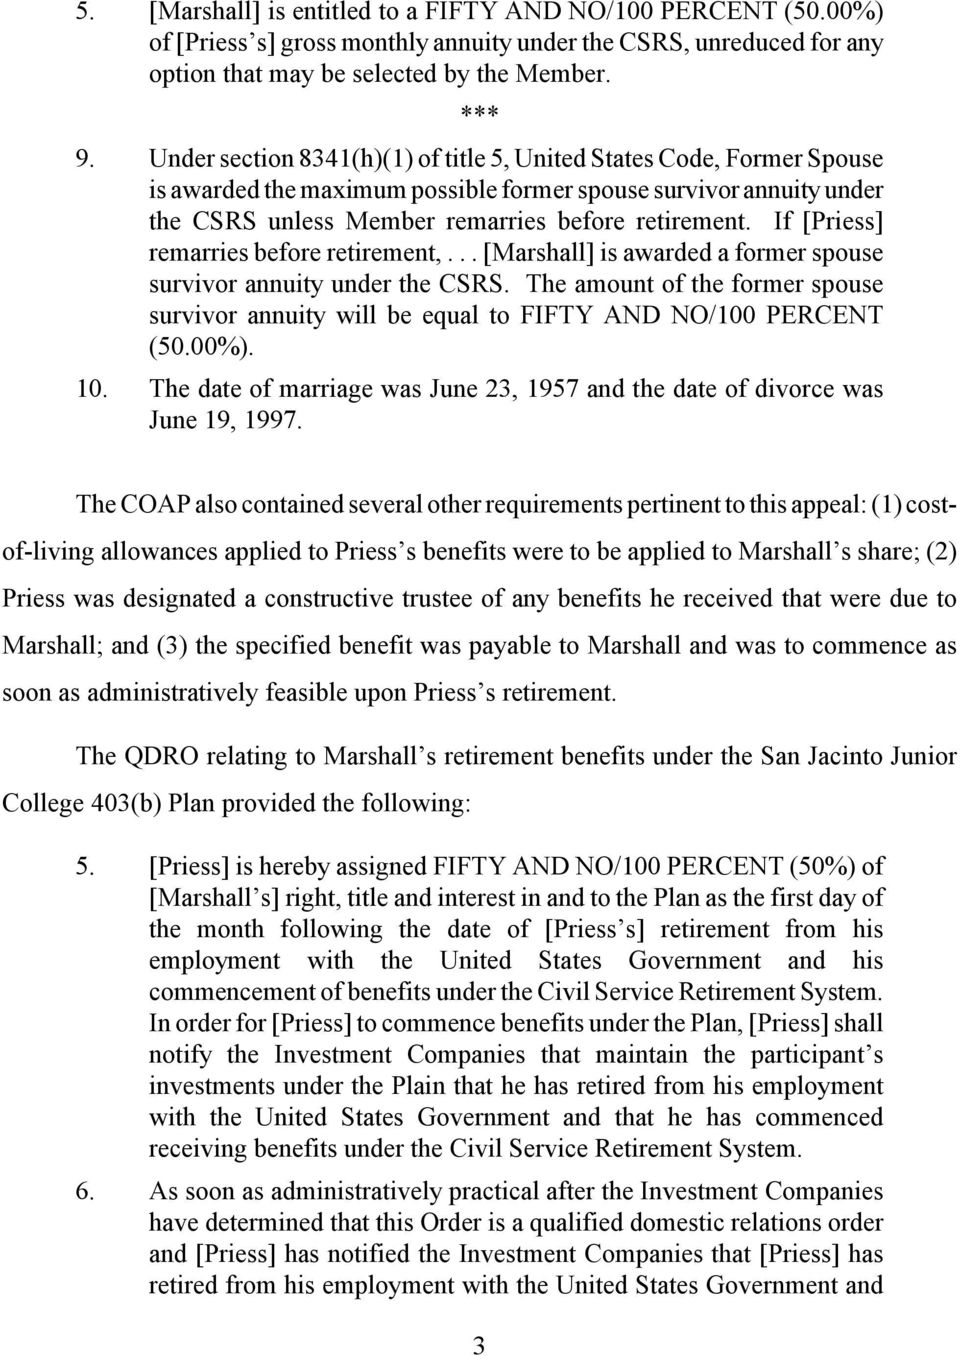 If [Priess] remarries before retirement,... [Marshall] is awarded a former spouse survivor annuity under the CSRS.